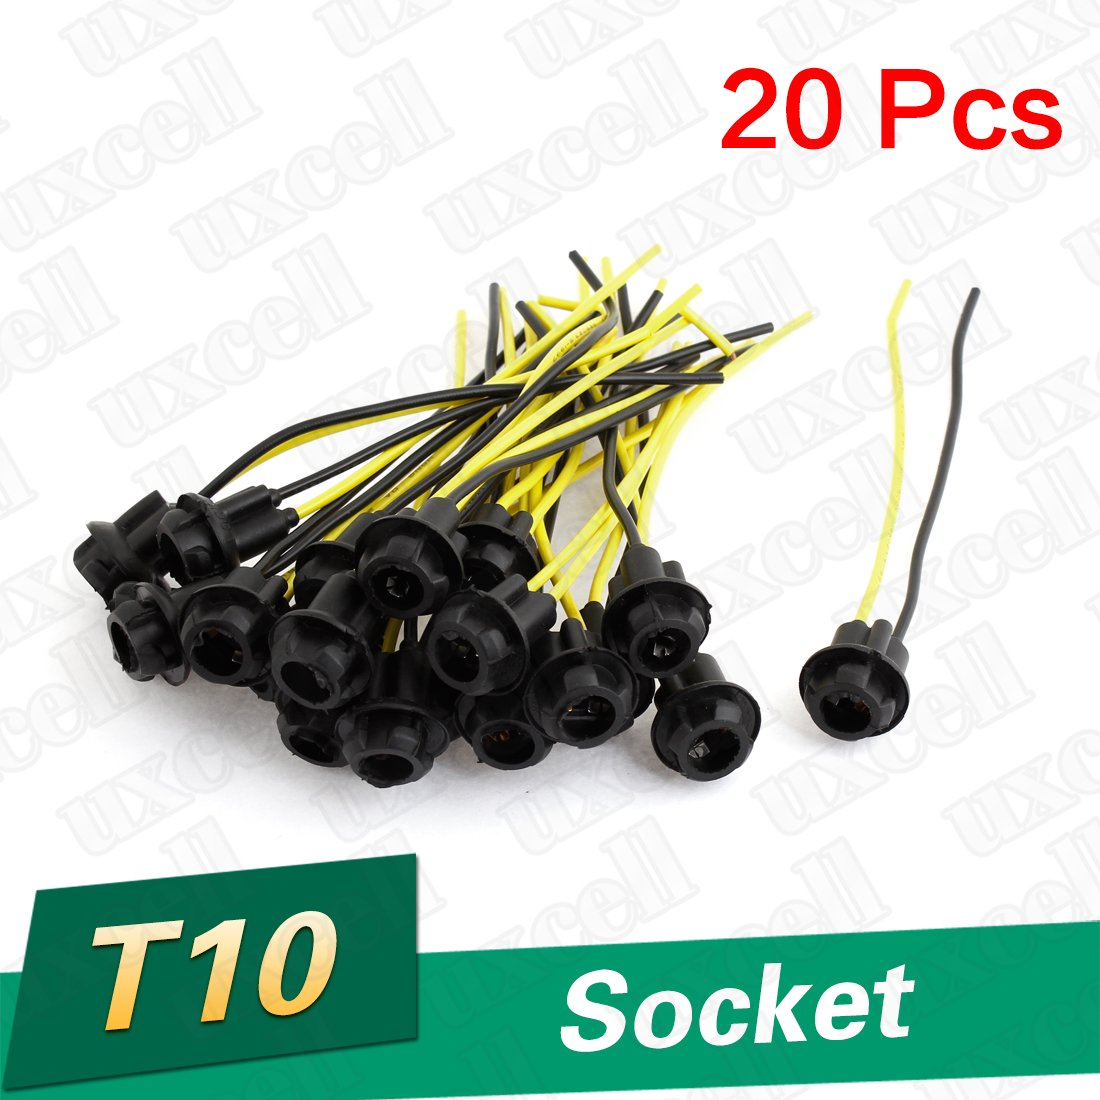 Amazon Uxcell 20PCS T10 Harness Connectors Wiring Sockets 168 194 2825 912 921 W5W DC 12V Home Improvement